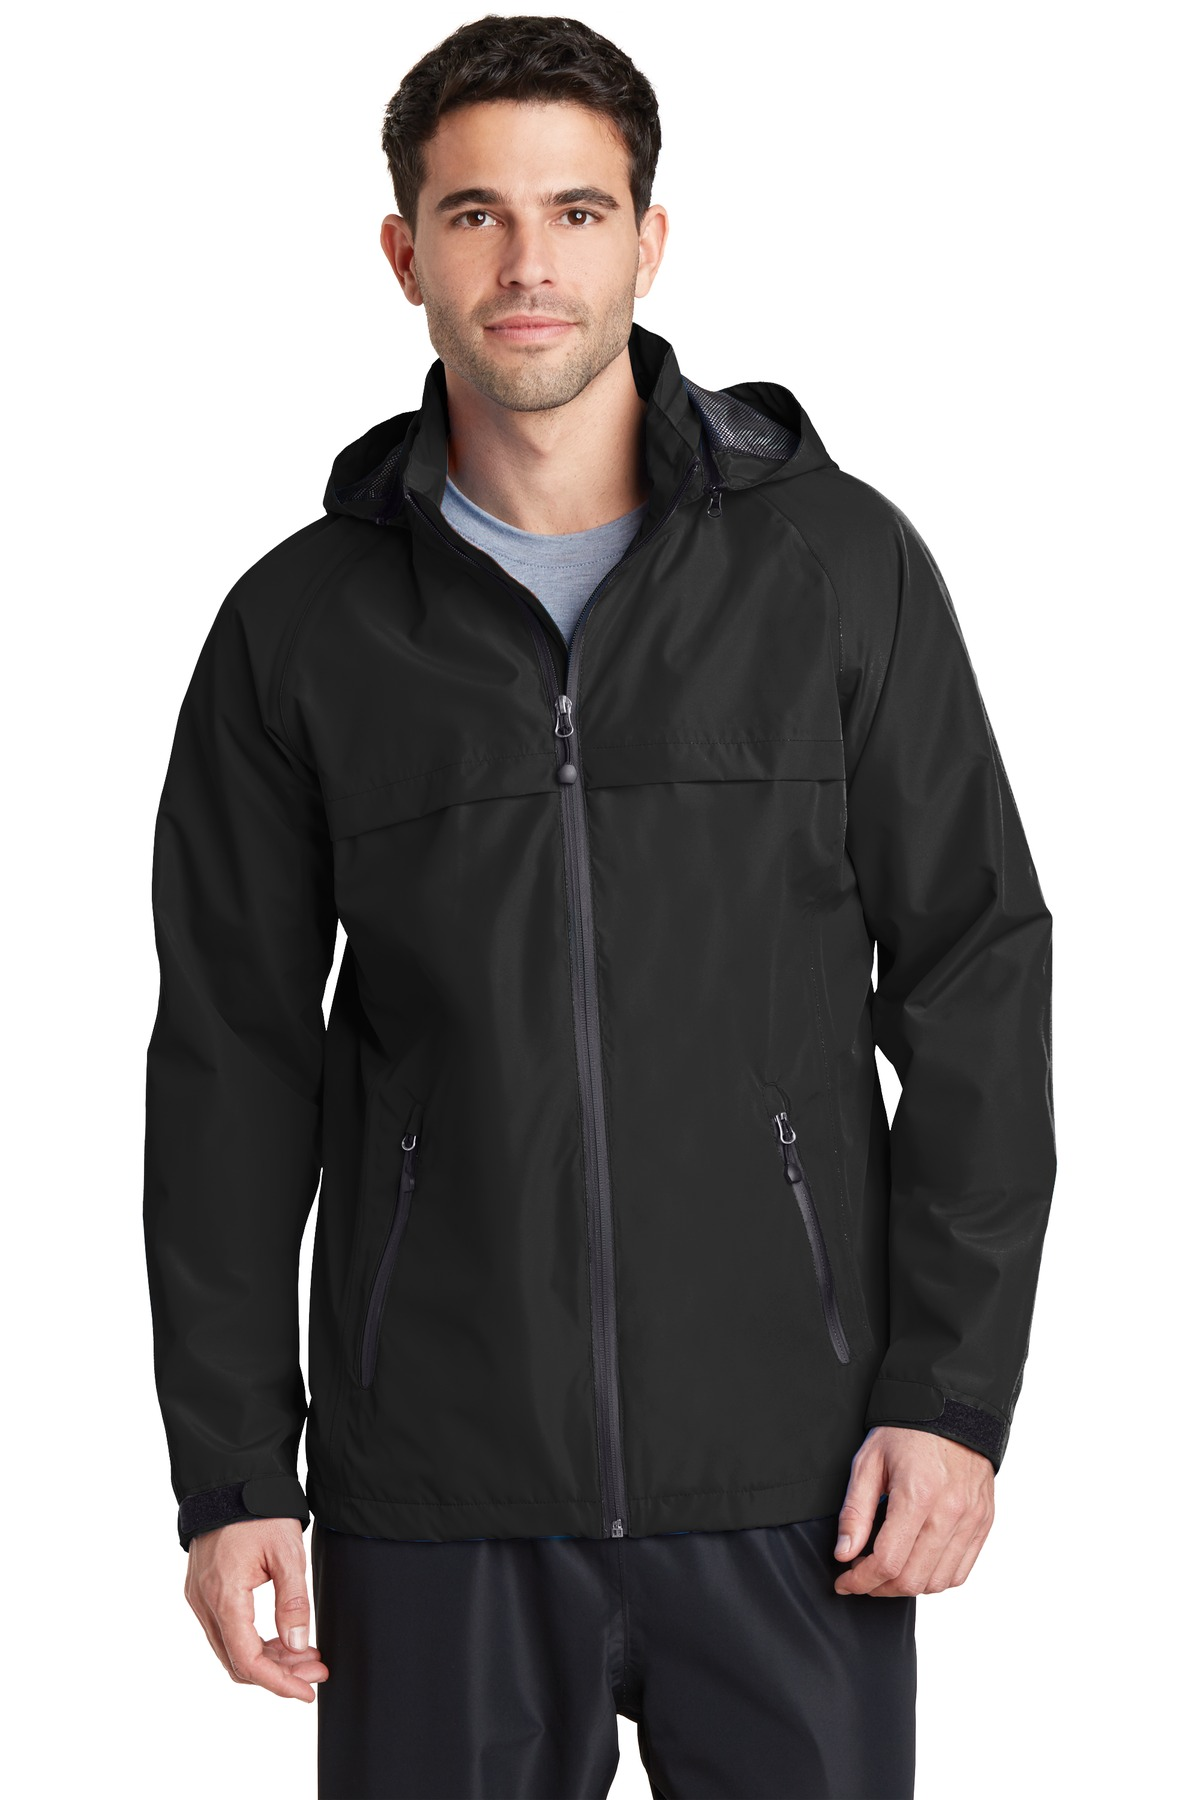 Port Authority  J333 - Torrent Waterproof Jacket